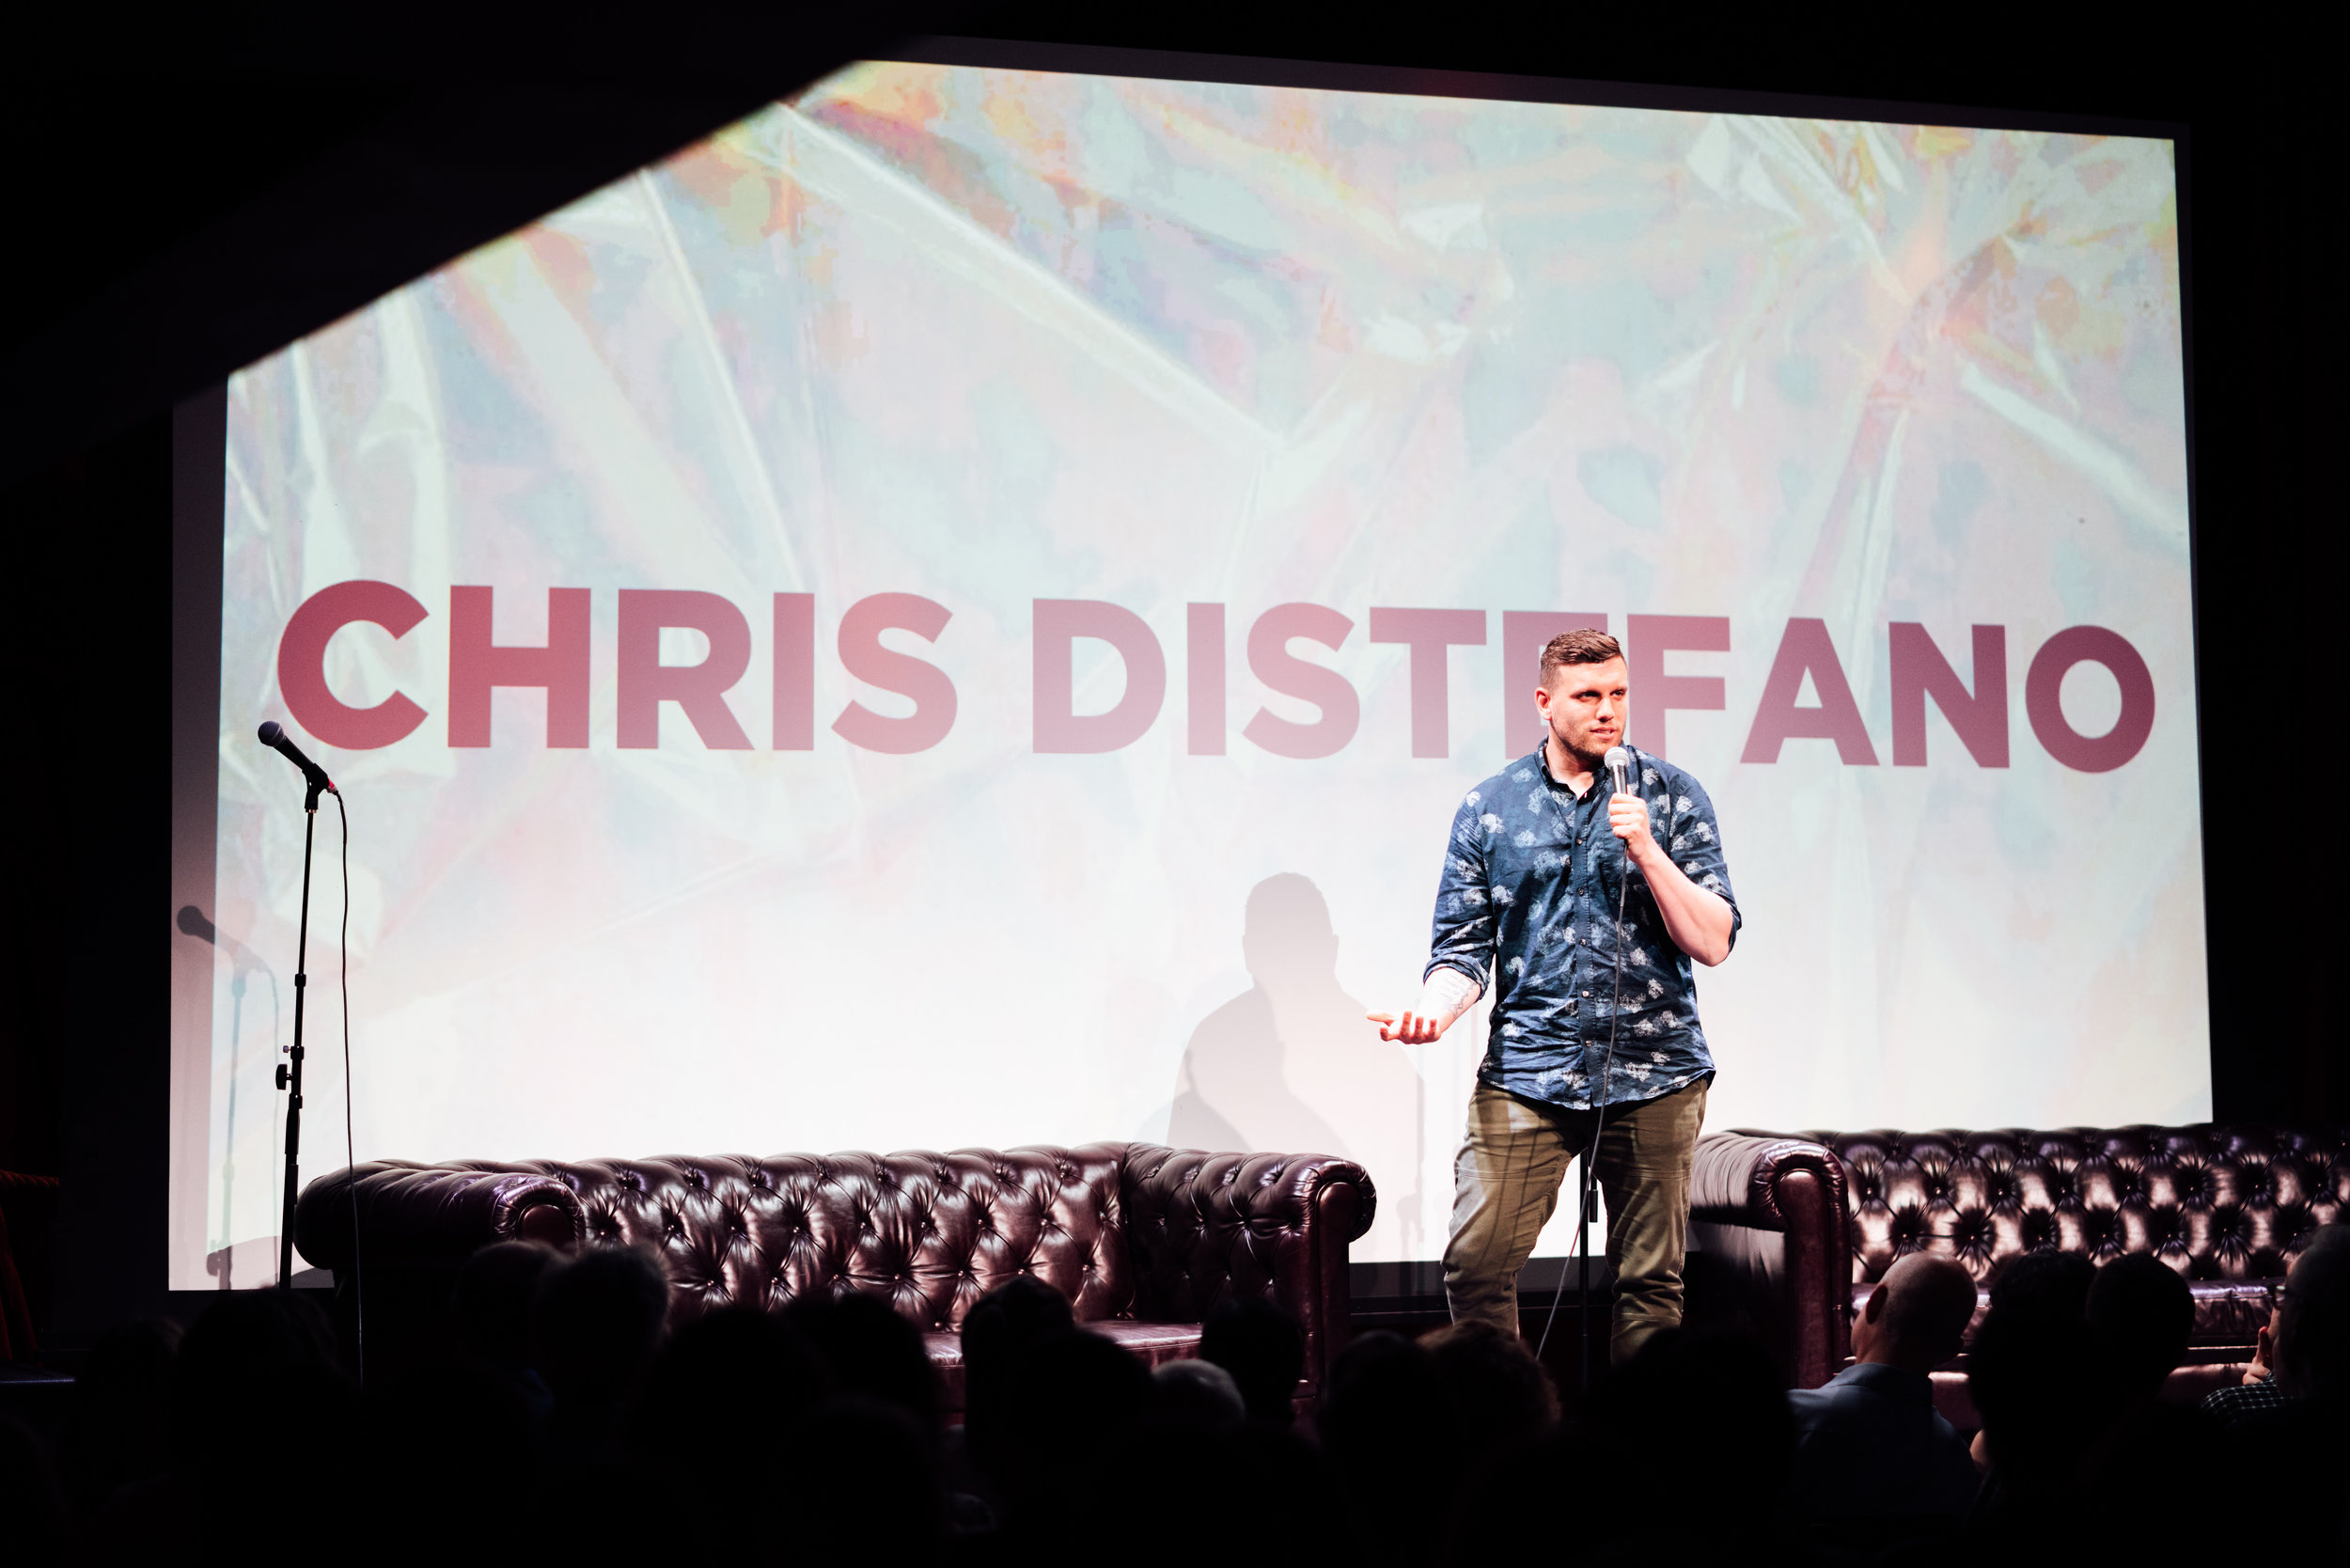 chris-distefano-the-exhibition-2.jpg